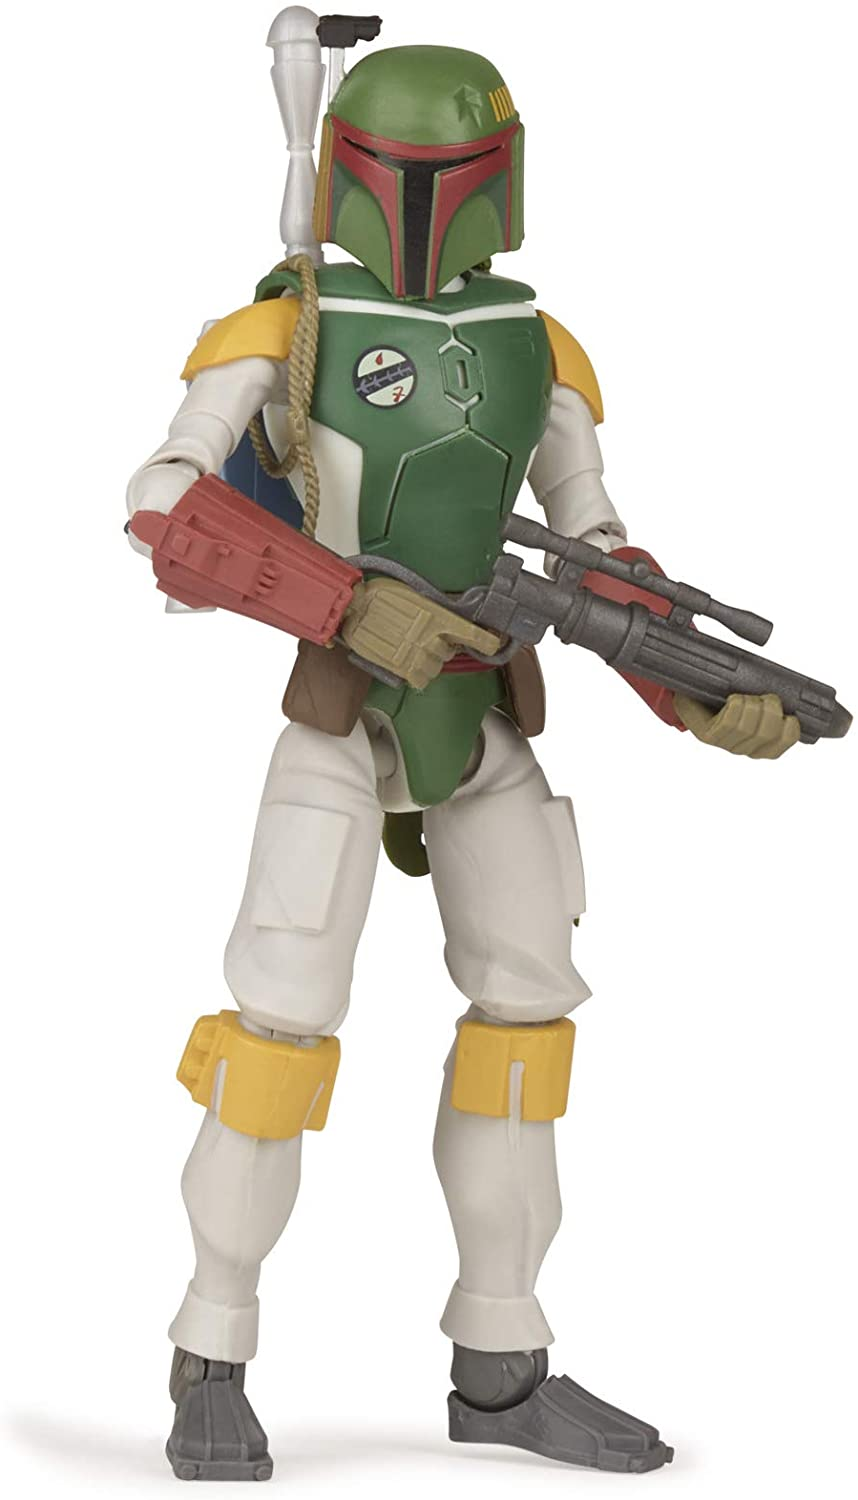 Star Wars Galaxy of Adventures Boba Fett Toy 5-inch Scale Action Figure with Fun Projectile Feature